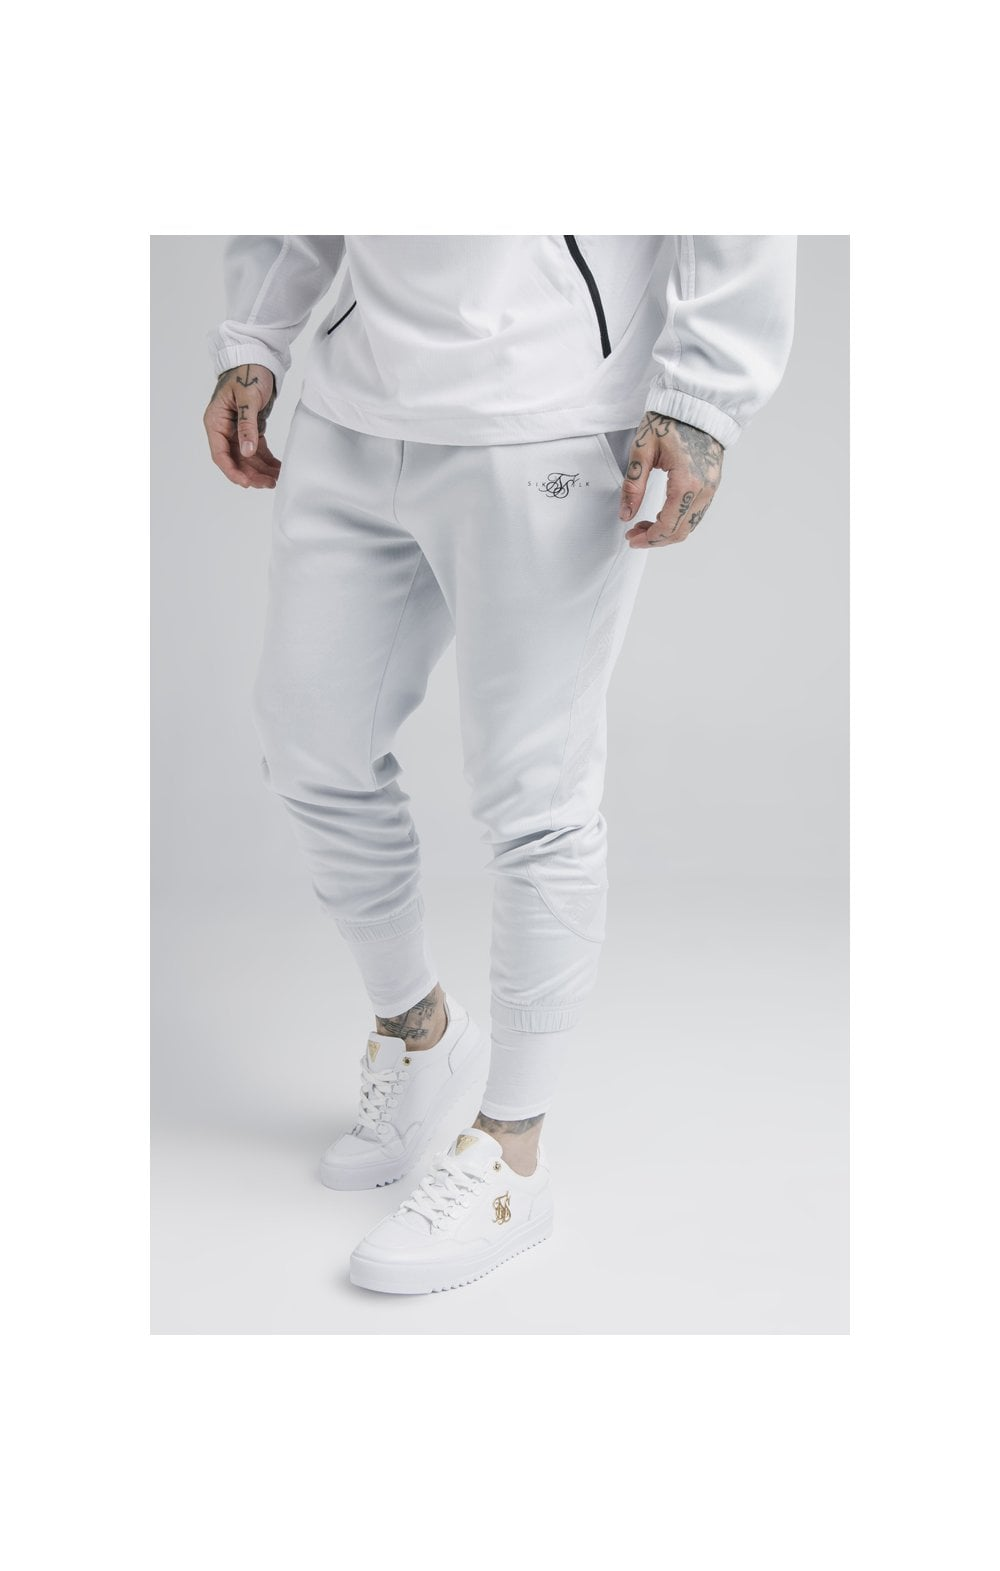 SikSilk Tranquil Dual Cuff Pants - Light Blue & White